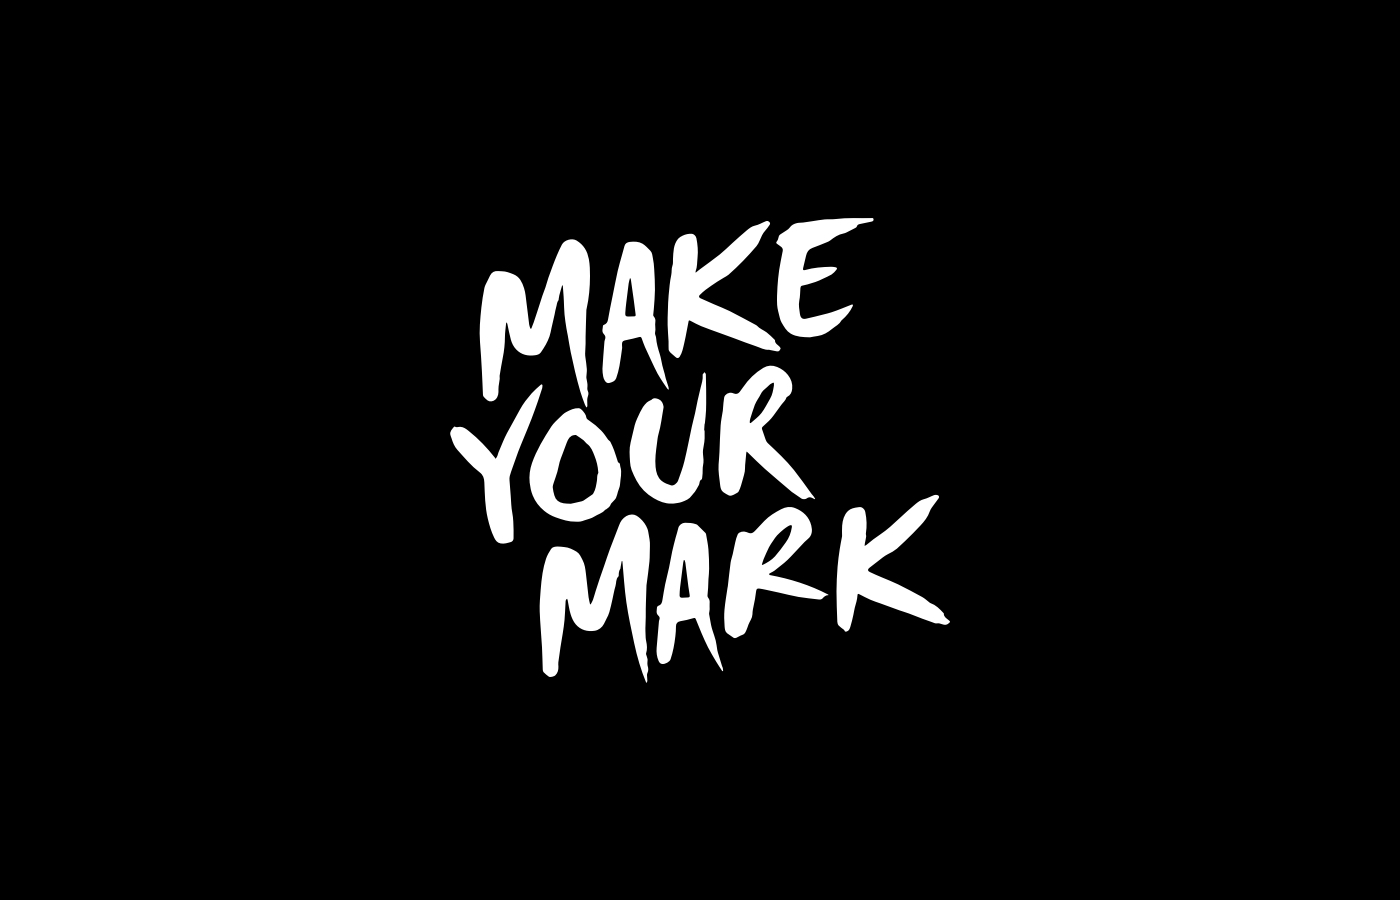 Make Your Mark Campaign Highly Commended